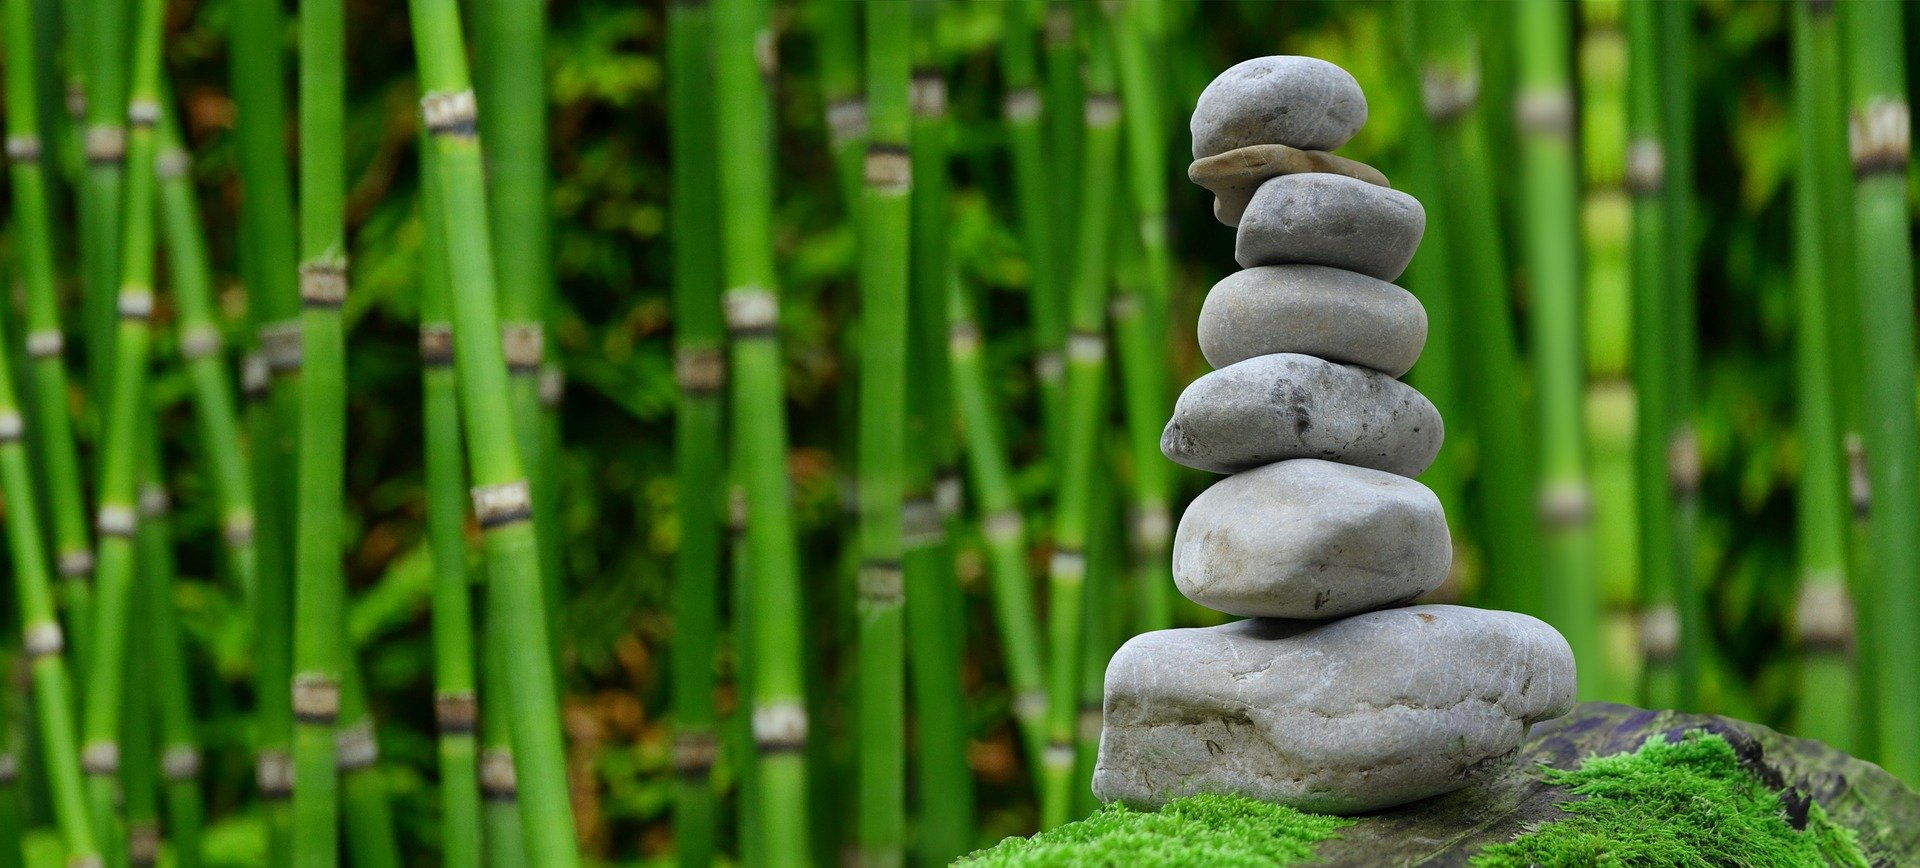 A landscape of stacked stones in a garden.